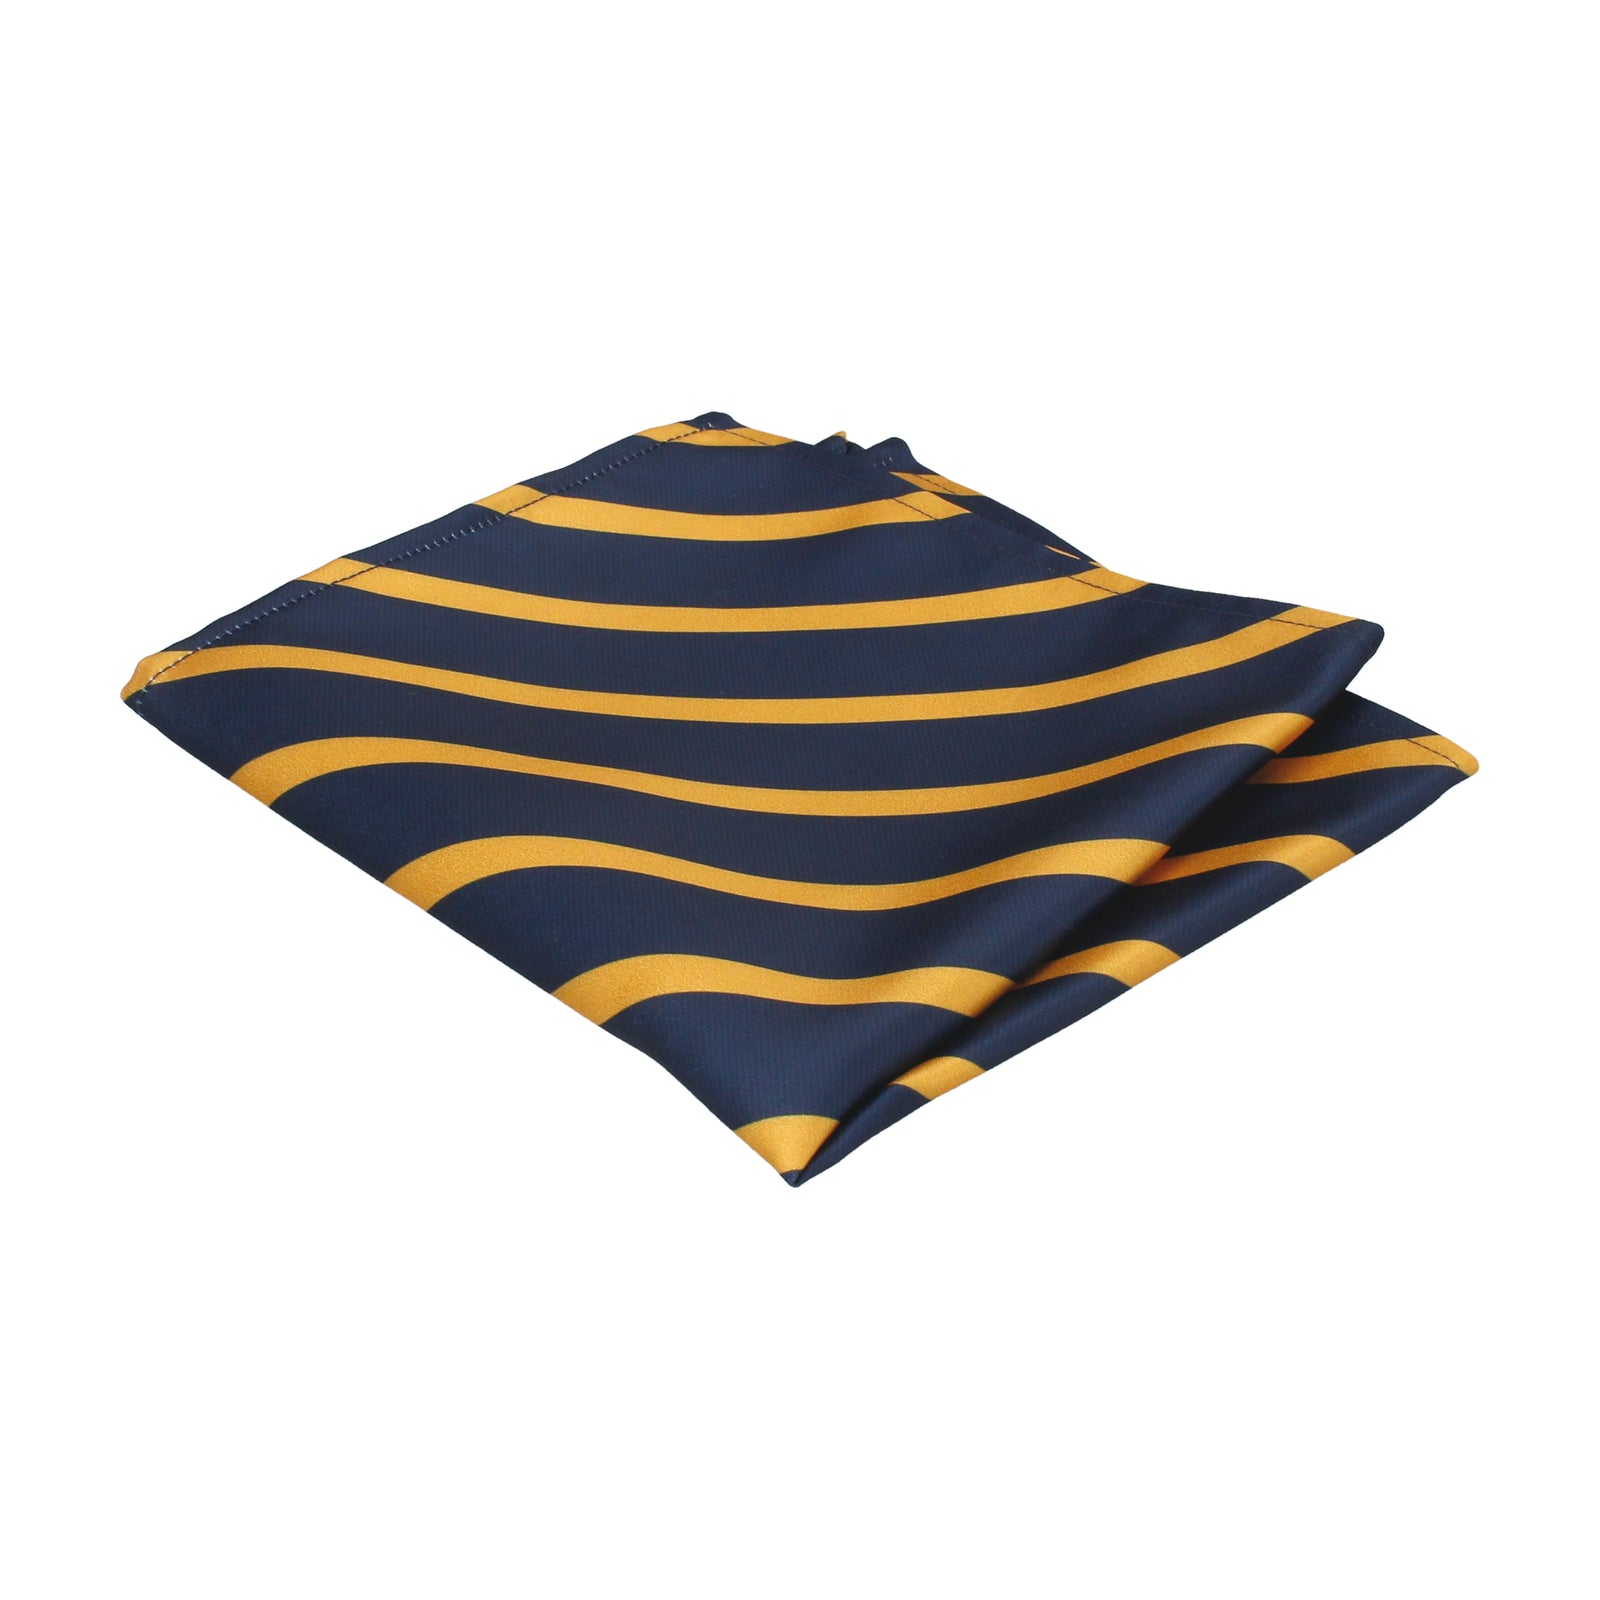 Albion in Mustard Gold Pocket Square